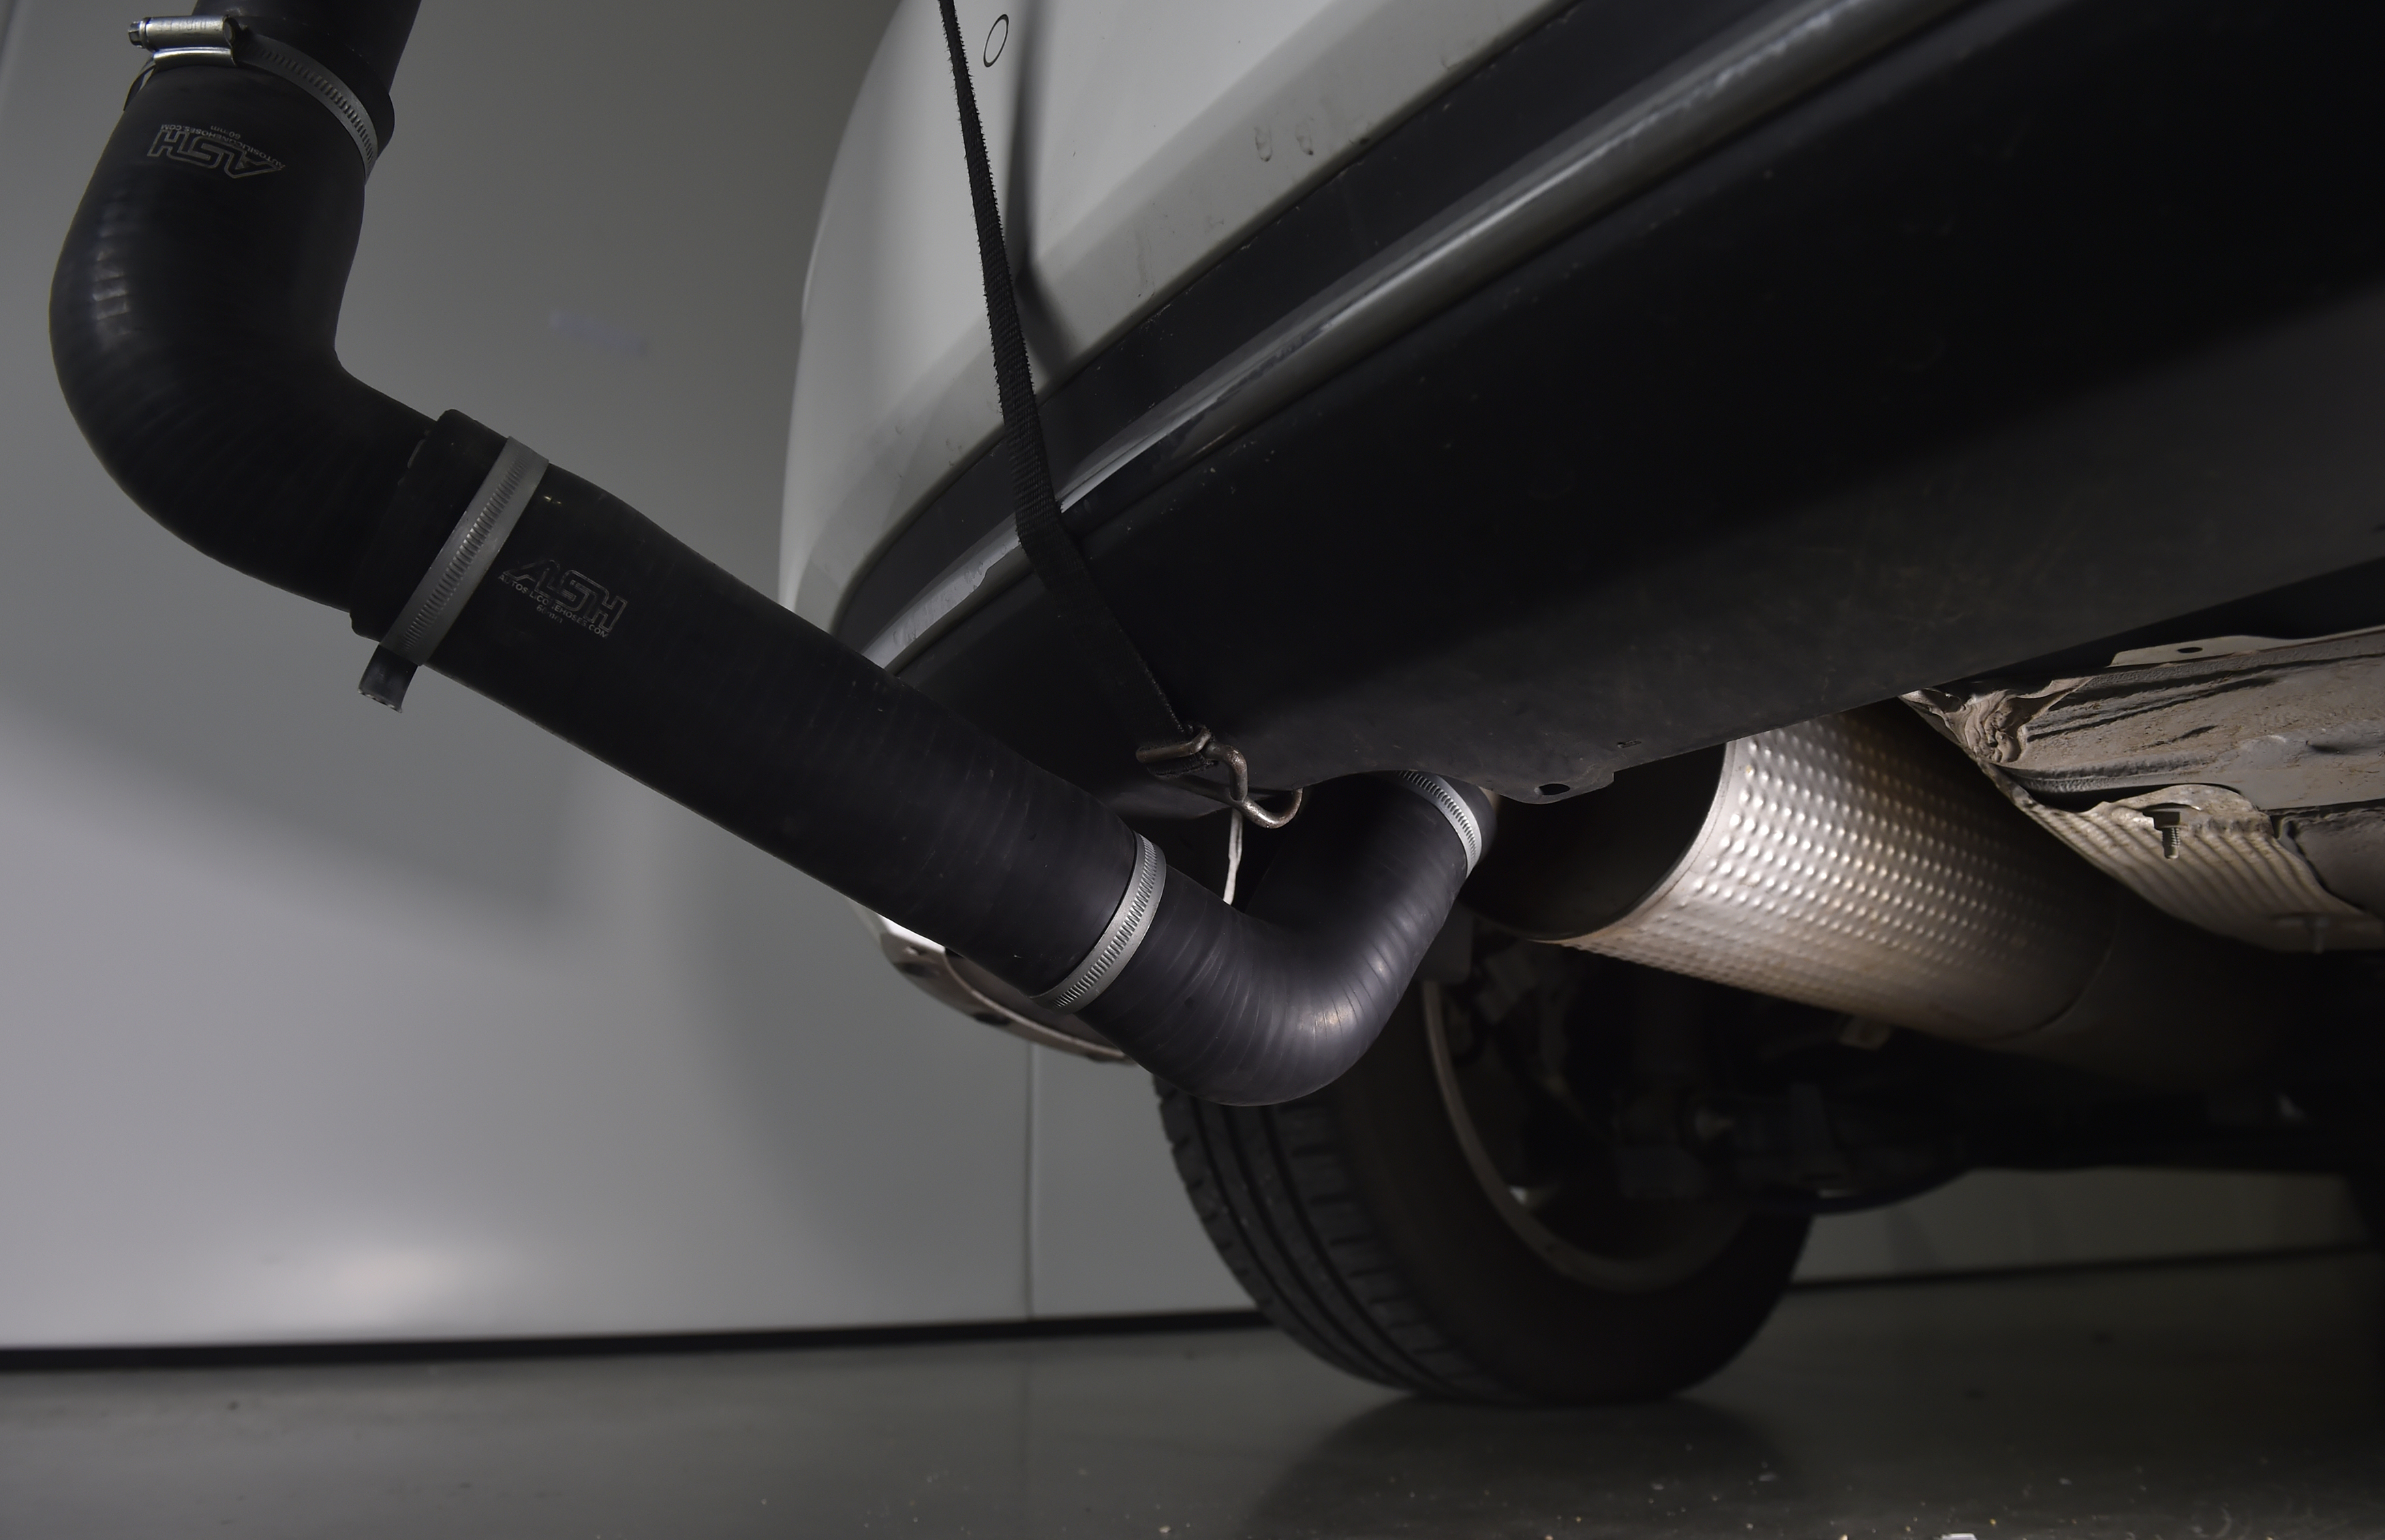 Emissions Analytics car testing in west London